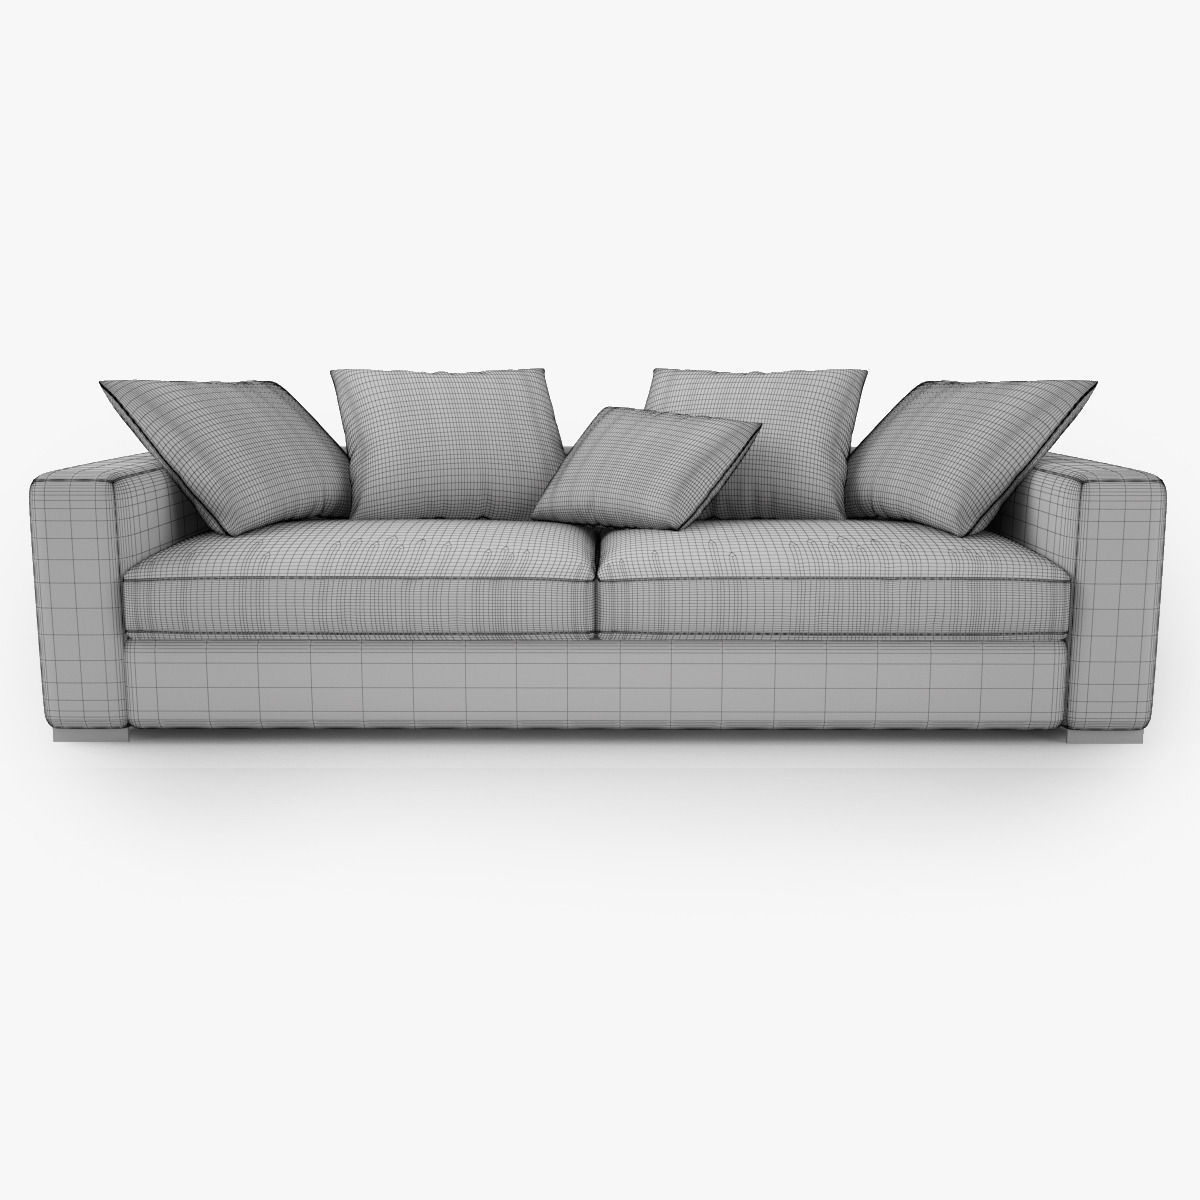 boconcept cenova ge52 sofa 3d model max obj fbx mtl mat. Black Bedroom Furniture Sets. Home Design Ideas